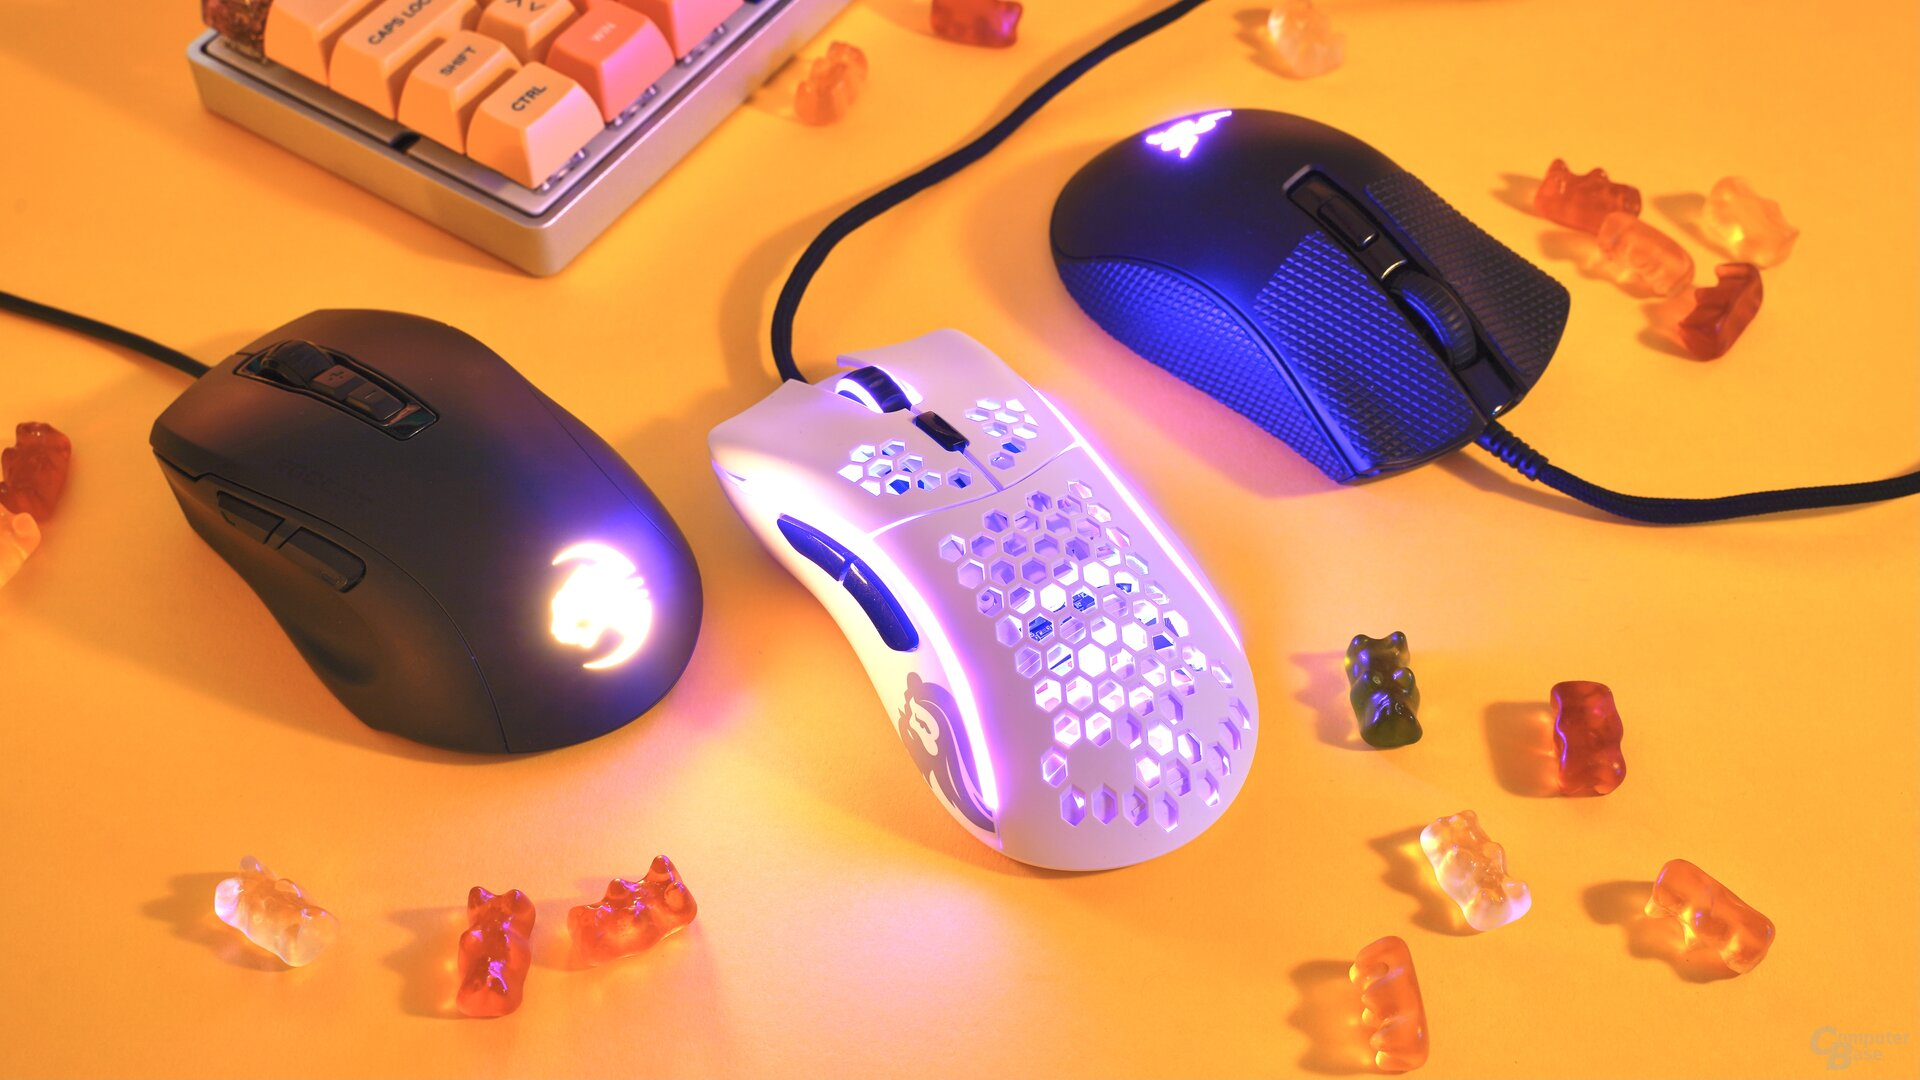 Roccat Kone Pure Ultra, Glorious Model D- & Razer DeathAdder V2 Mini